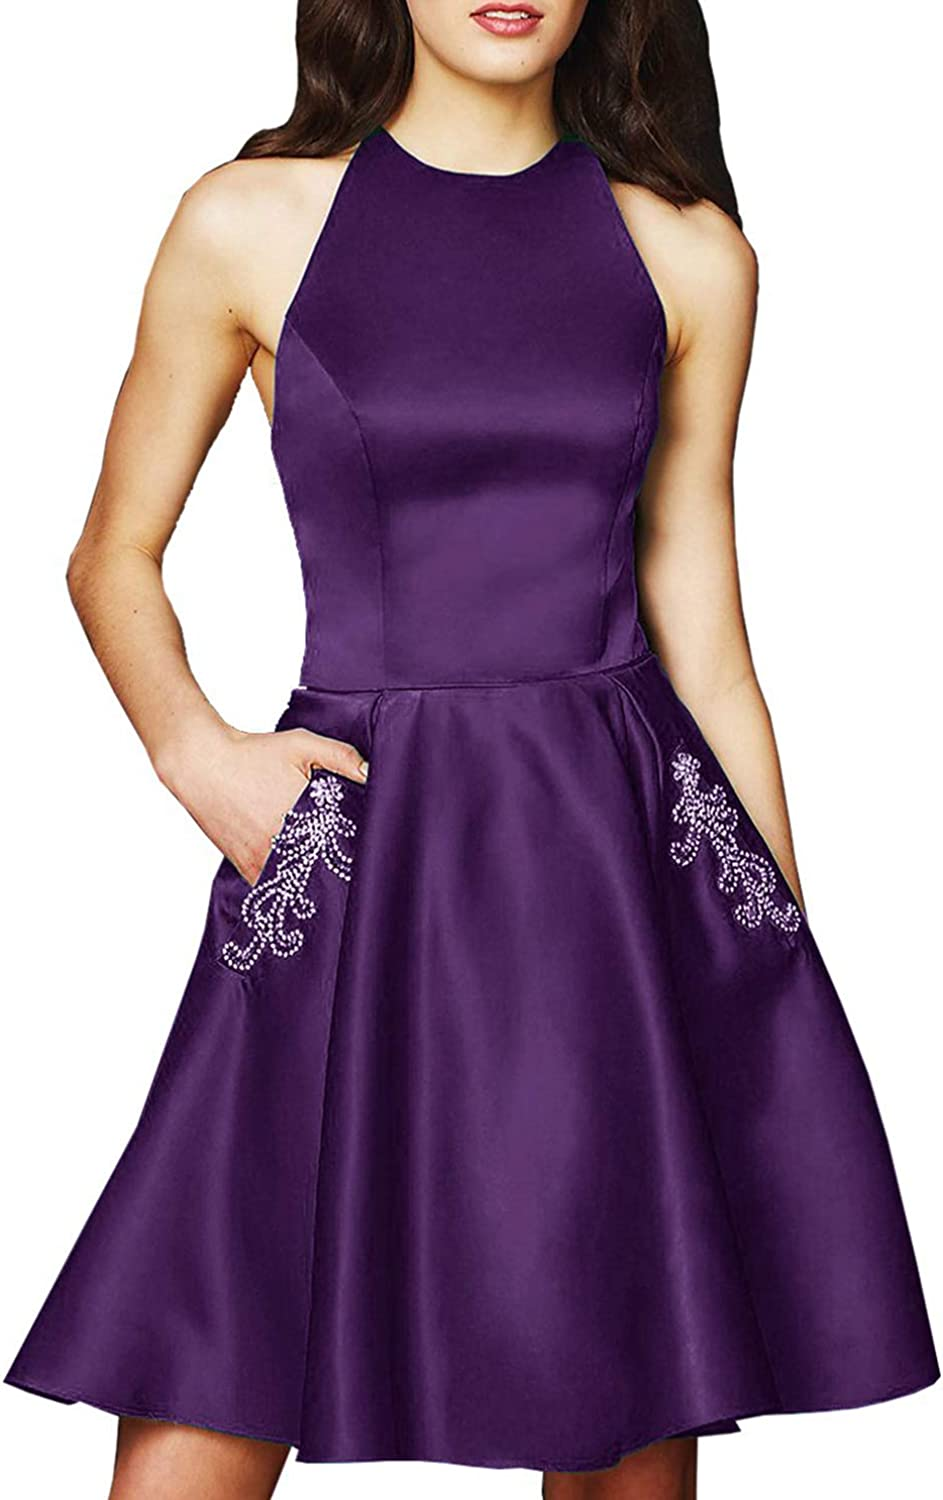 Scarisee Womens Halter Beaded Homecoming Dress Pocket Short Prom Party GownSA34